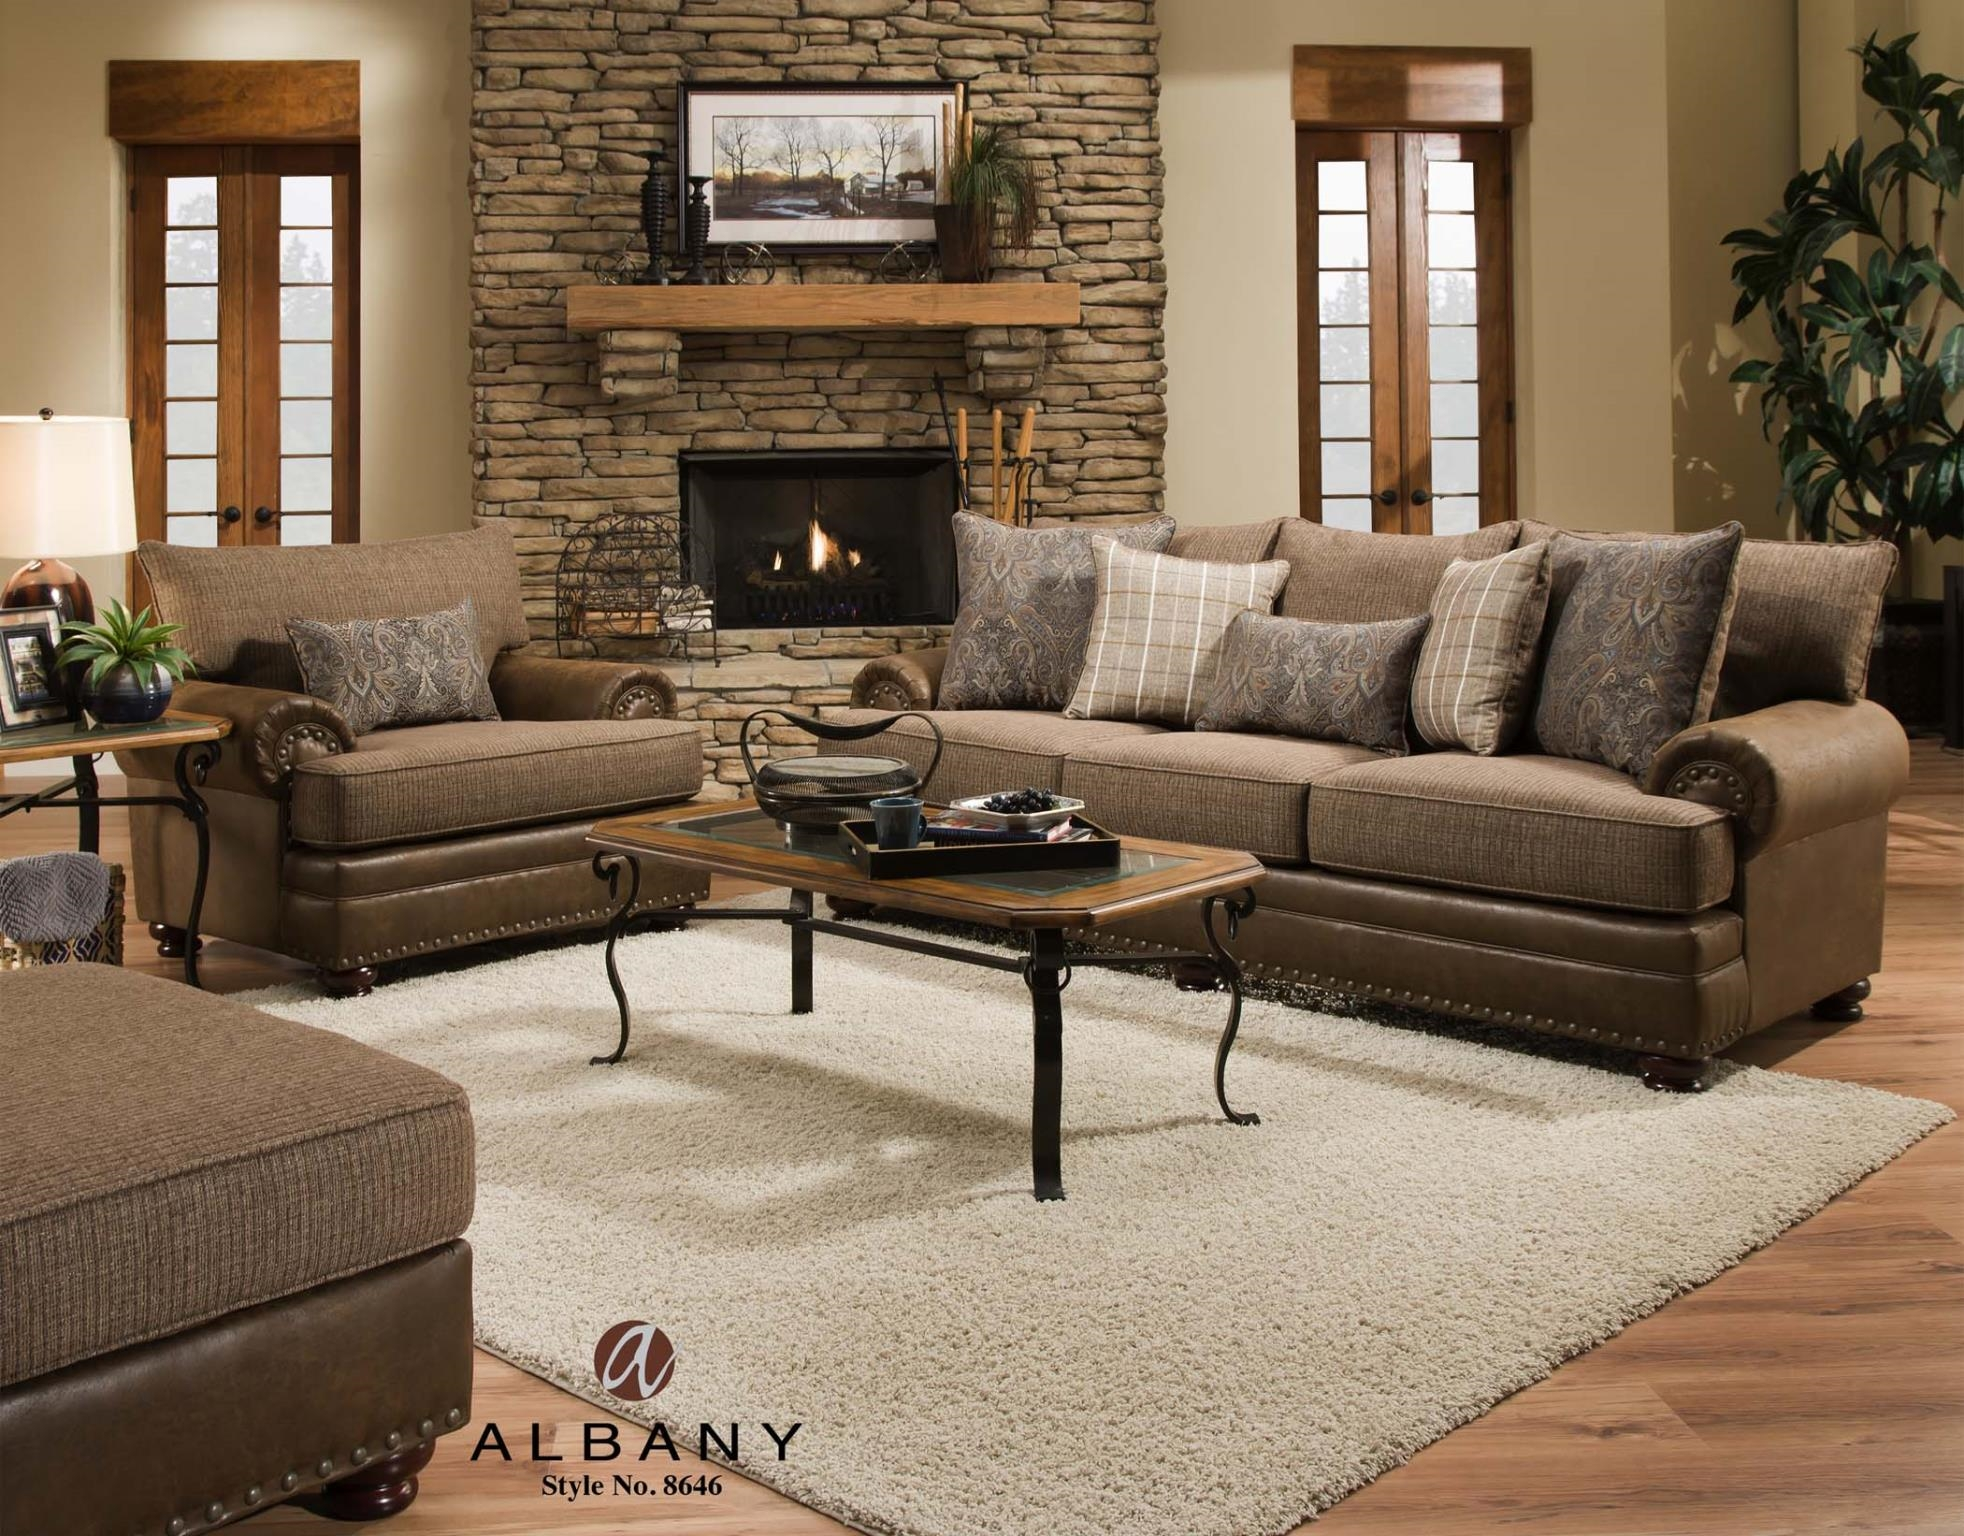 albany leather sofa sectional sofas under 800 industries ideas